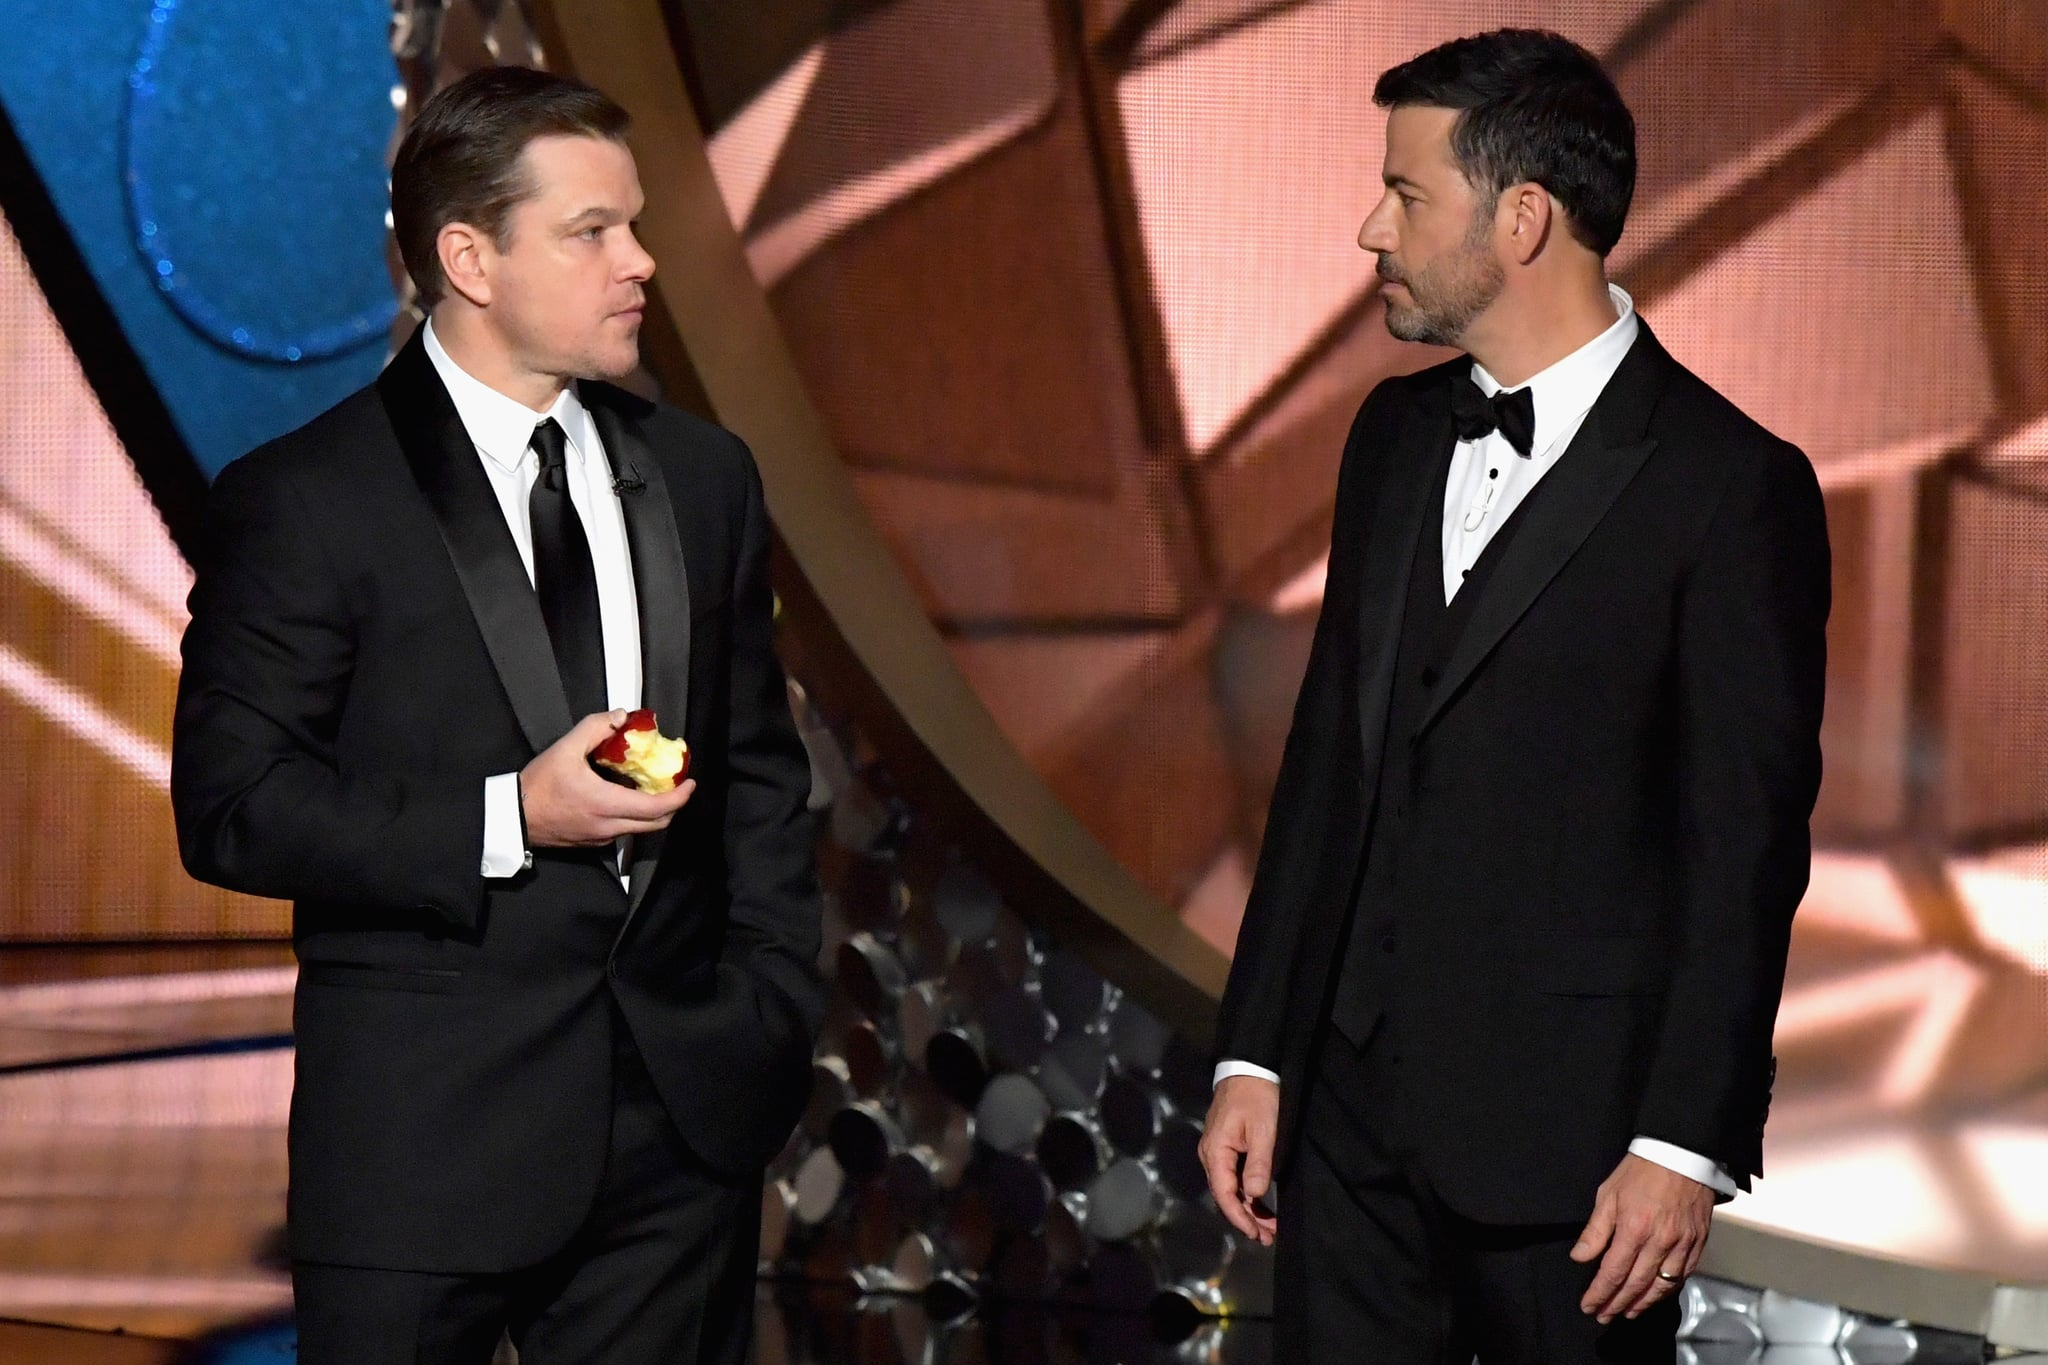 Jimmy Kimmel and Matt Damon Feud Details | POPSUGAR Celebrity